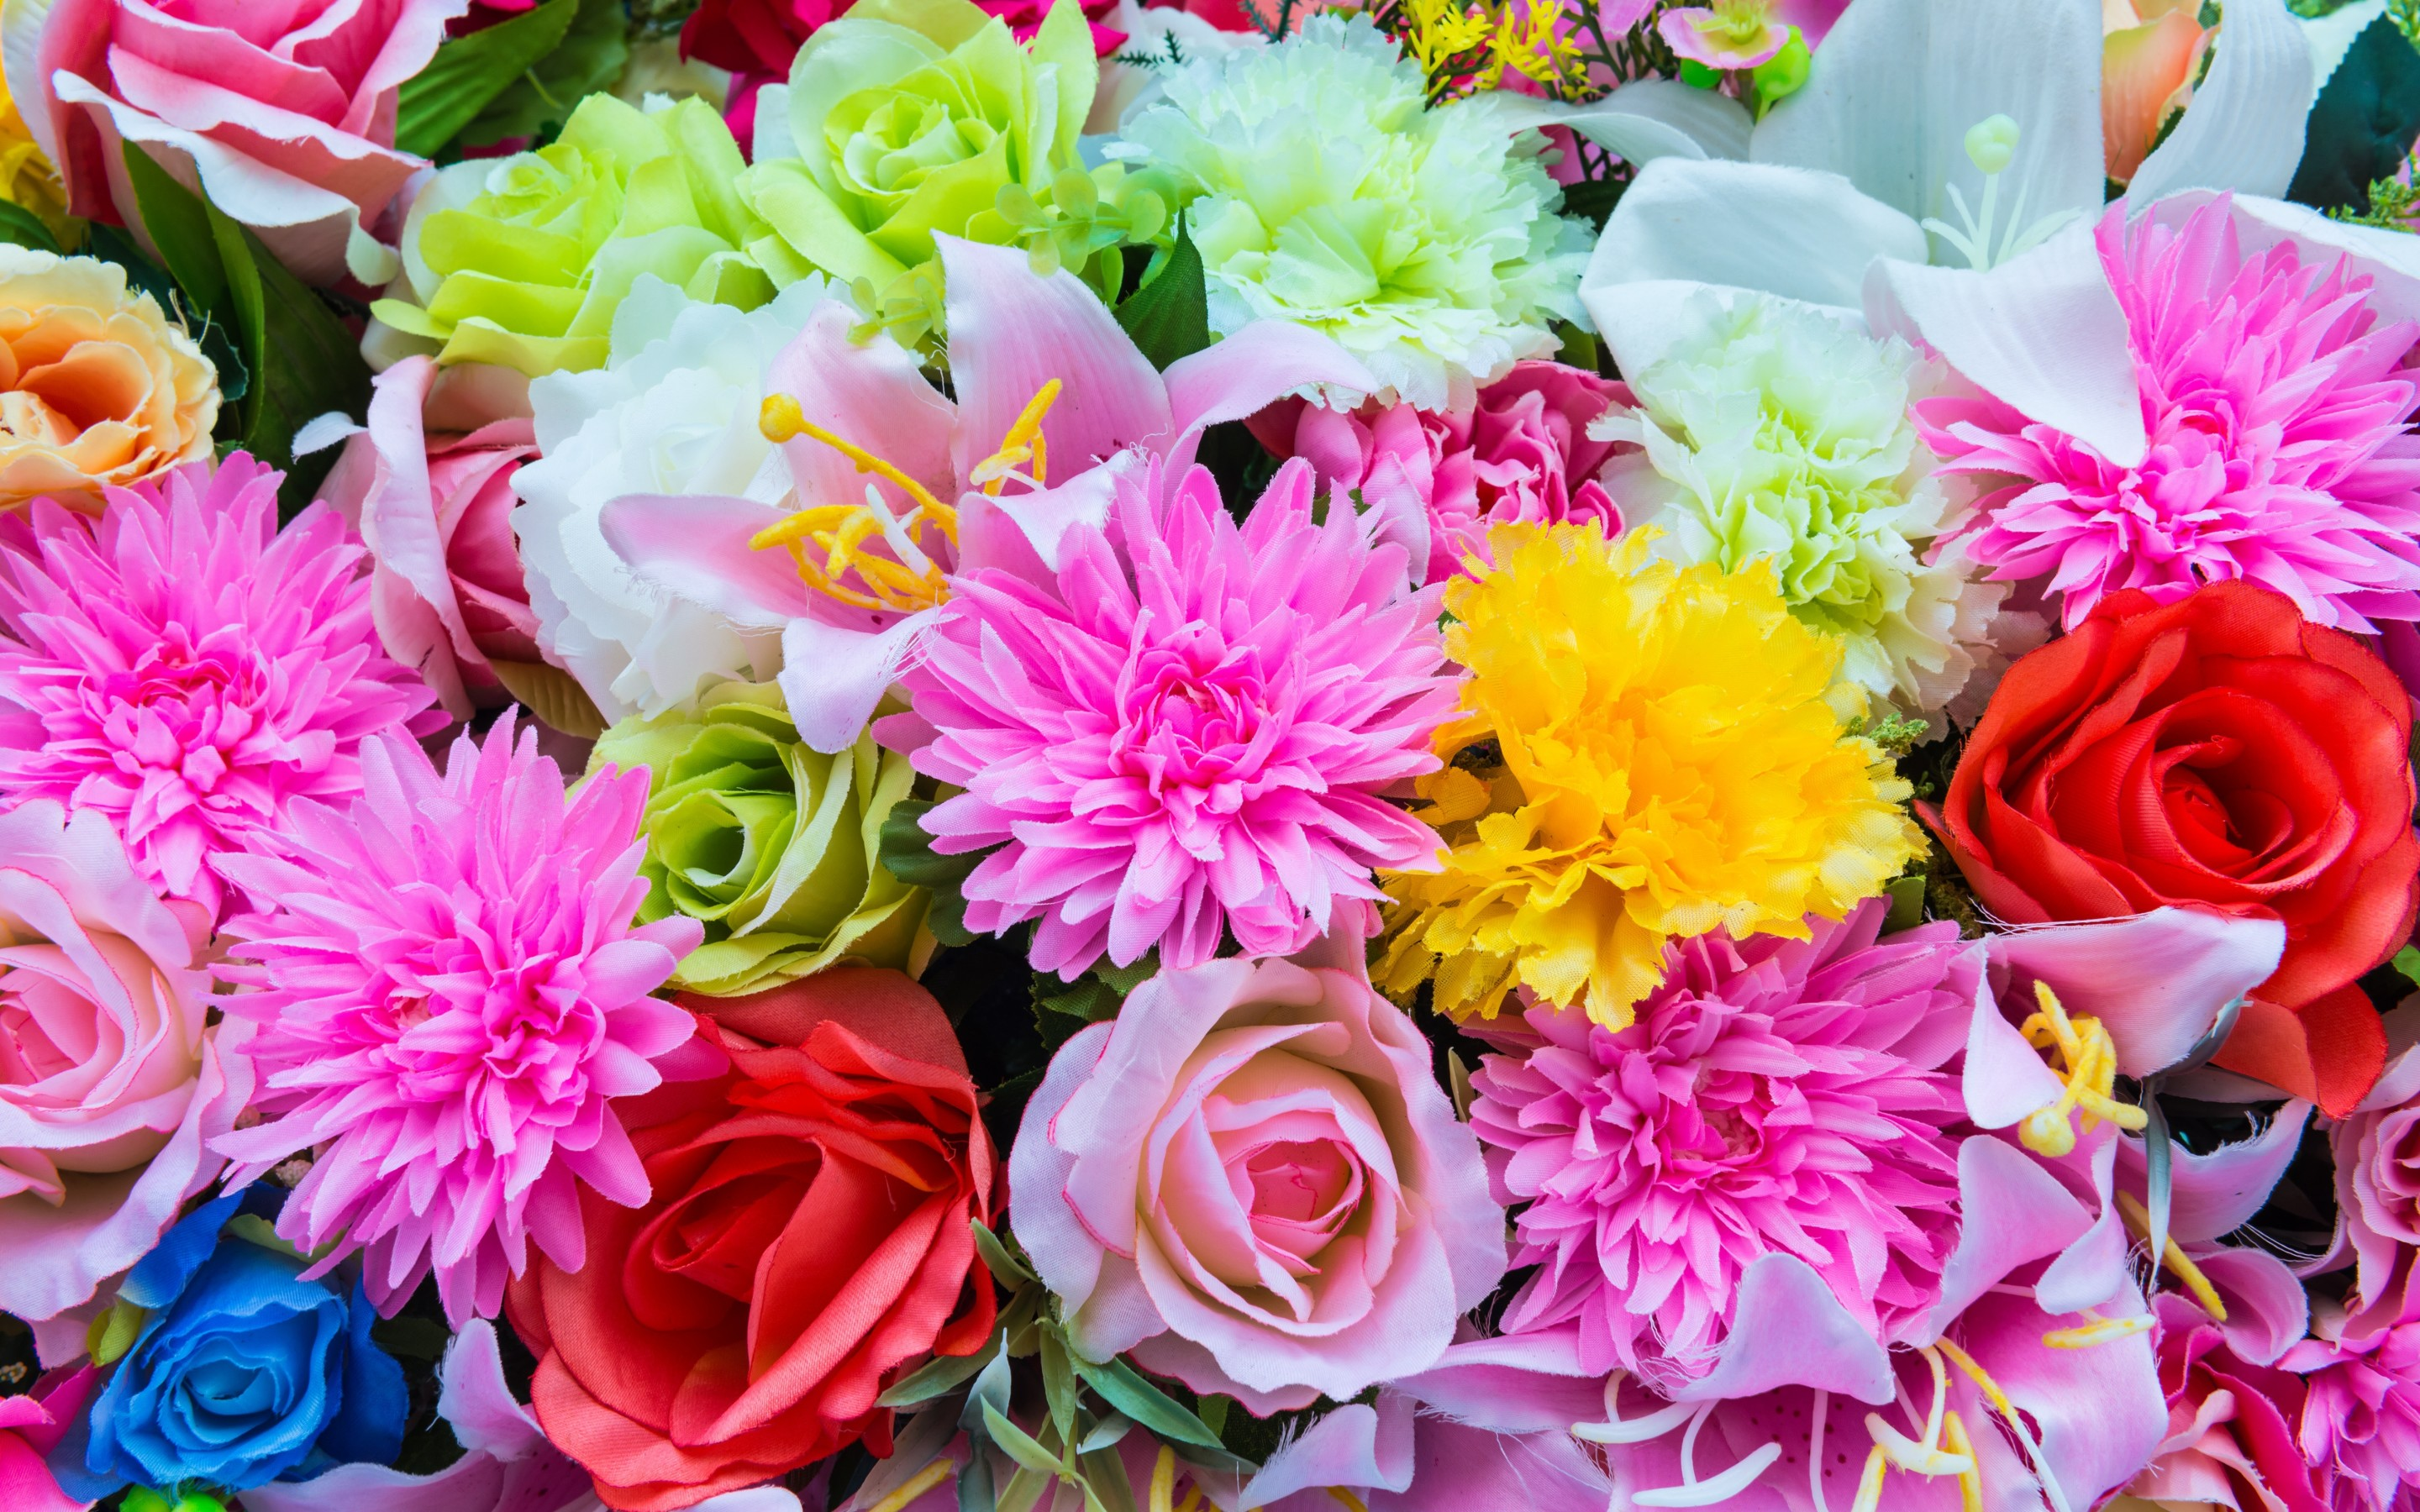 Colorful Spring Flowers Hd Wallpaper Background Image 2880x1800